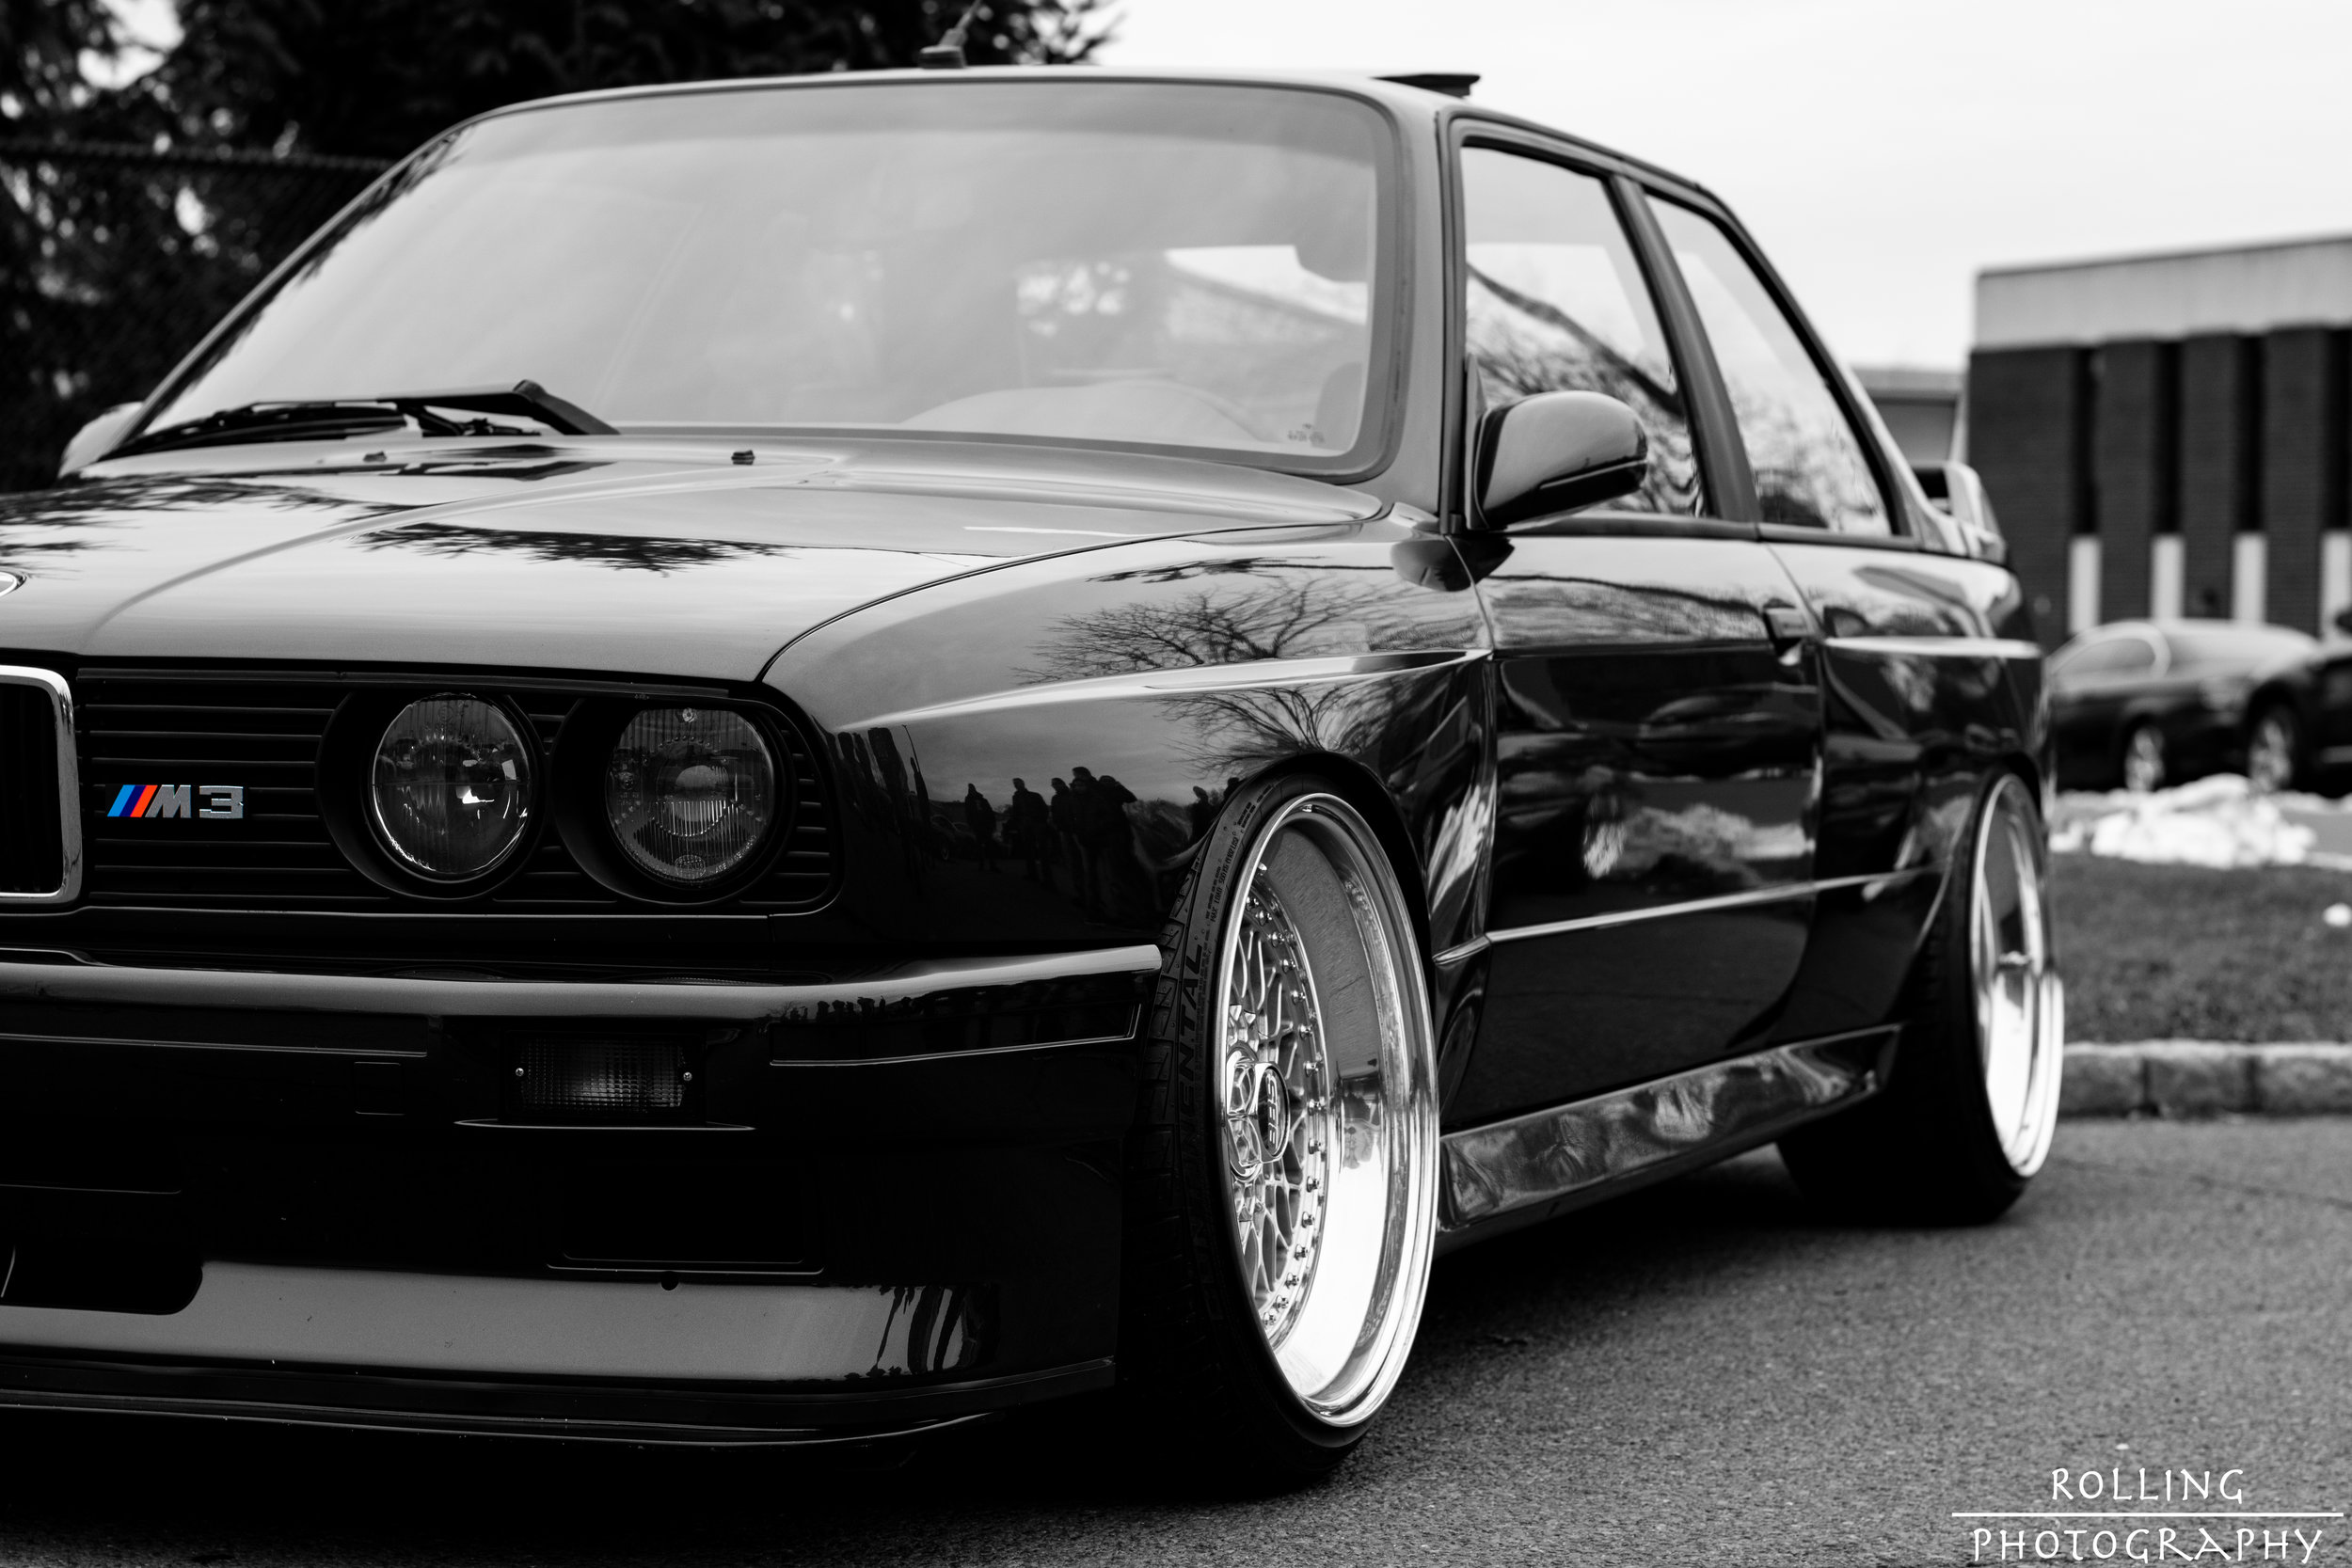 BMW E30 M3 Side Angle Edit.jpg